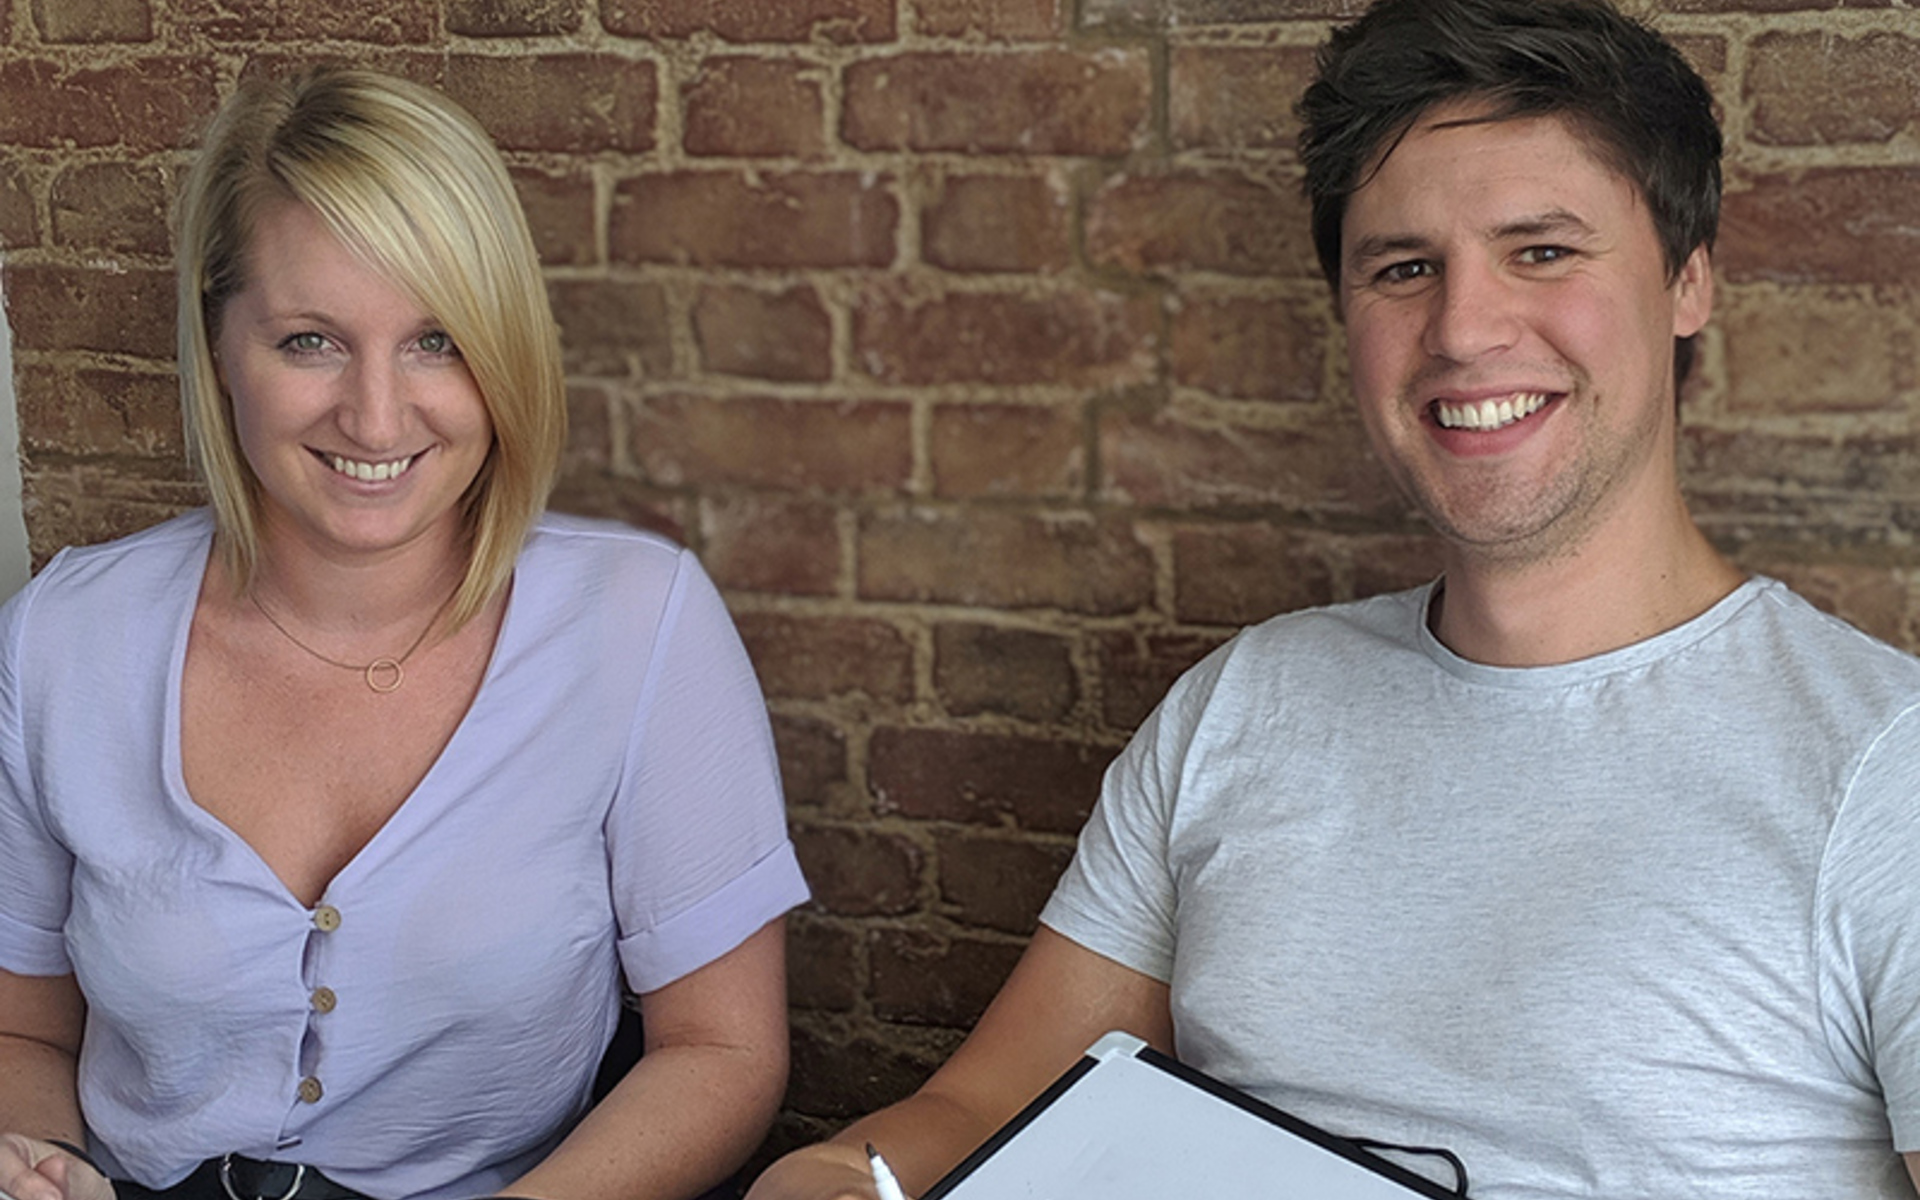 A blonde haired girl and a brown haired man sitting in front of a brick wall smiling